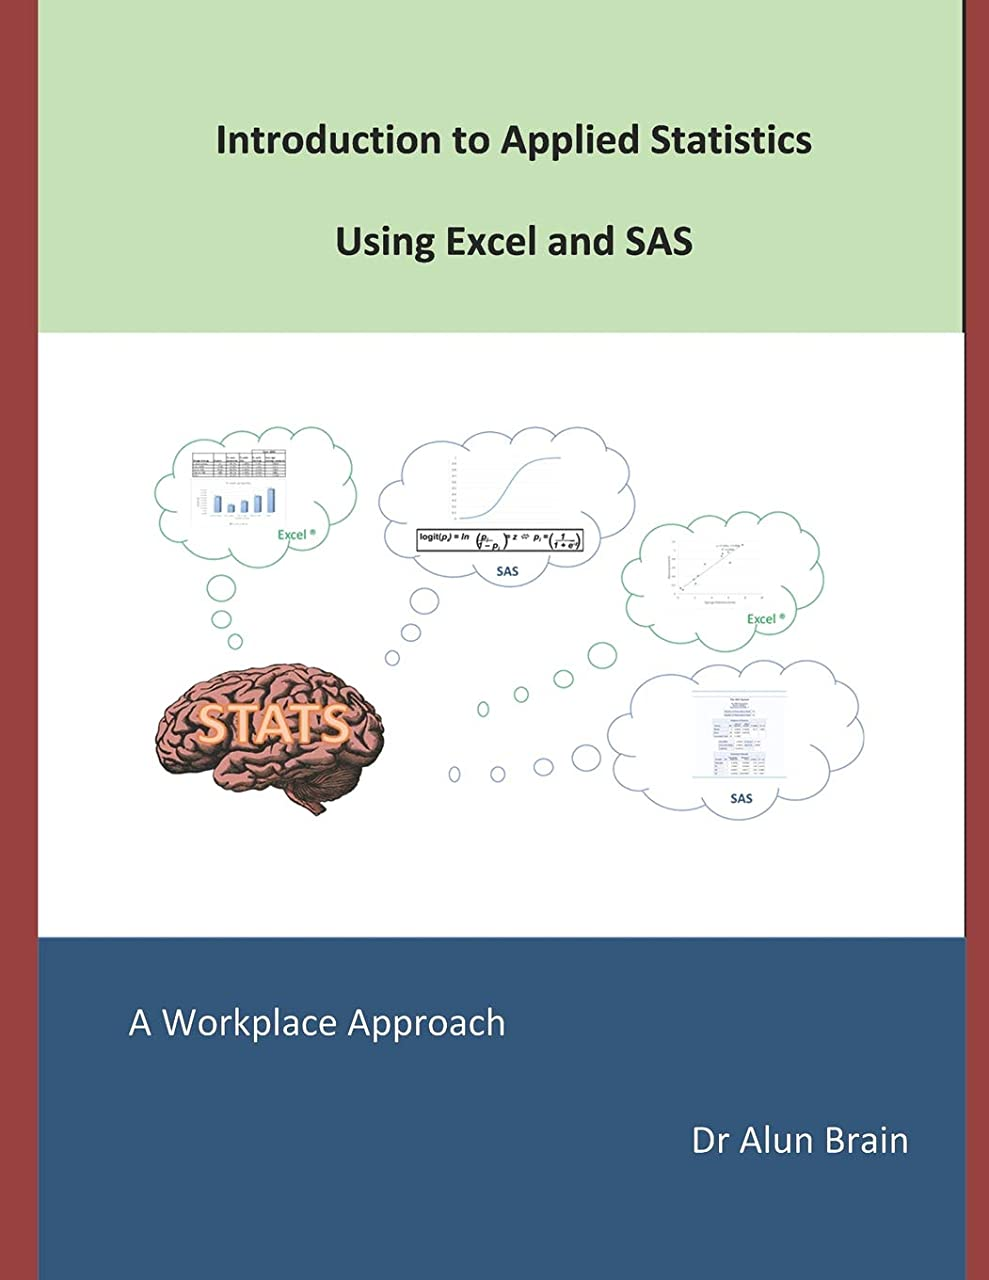 師匠統治可能アリIntroduction to Applied Statistics using Excel and SAS: A workplace approach